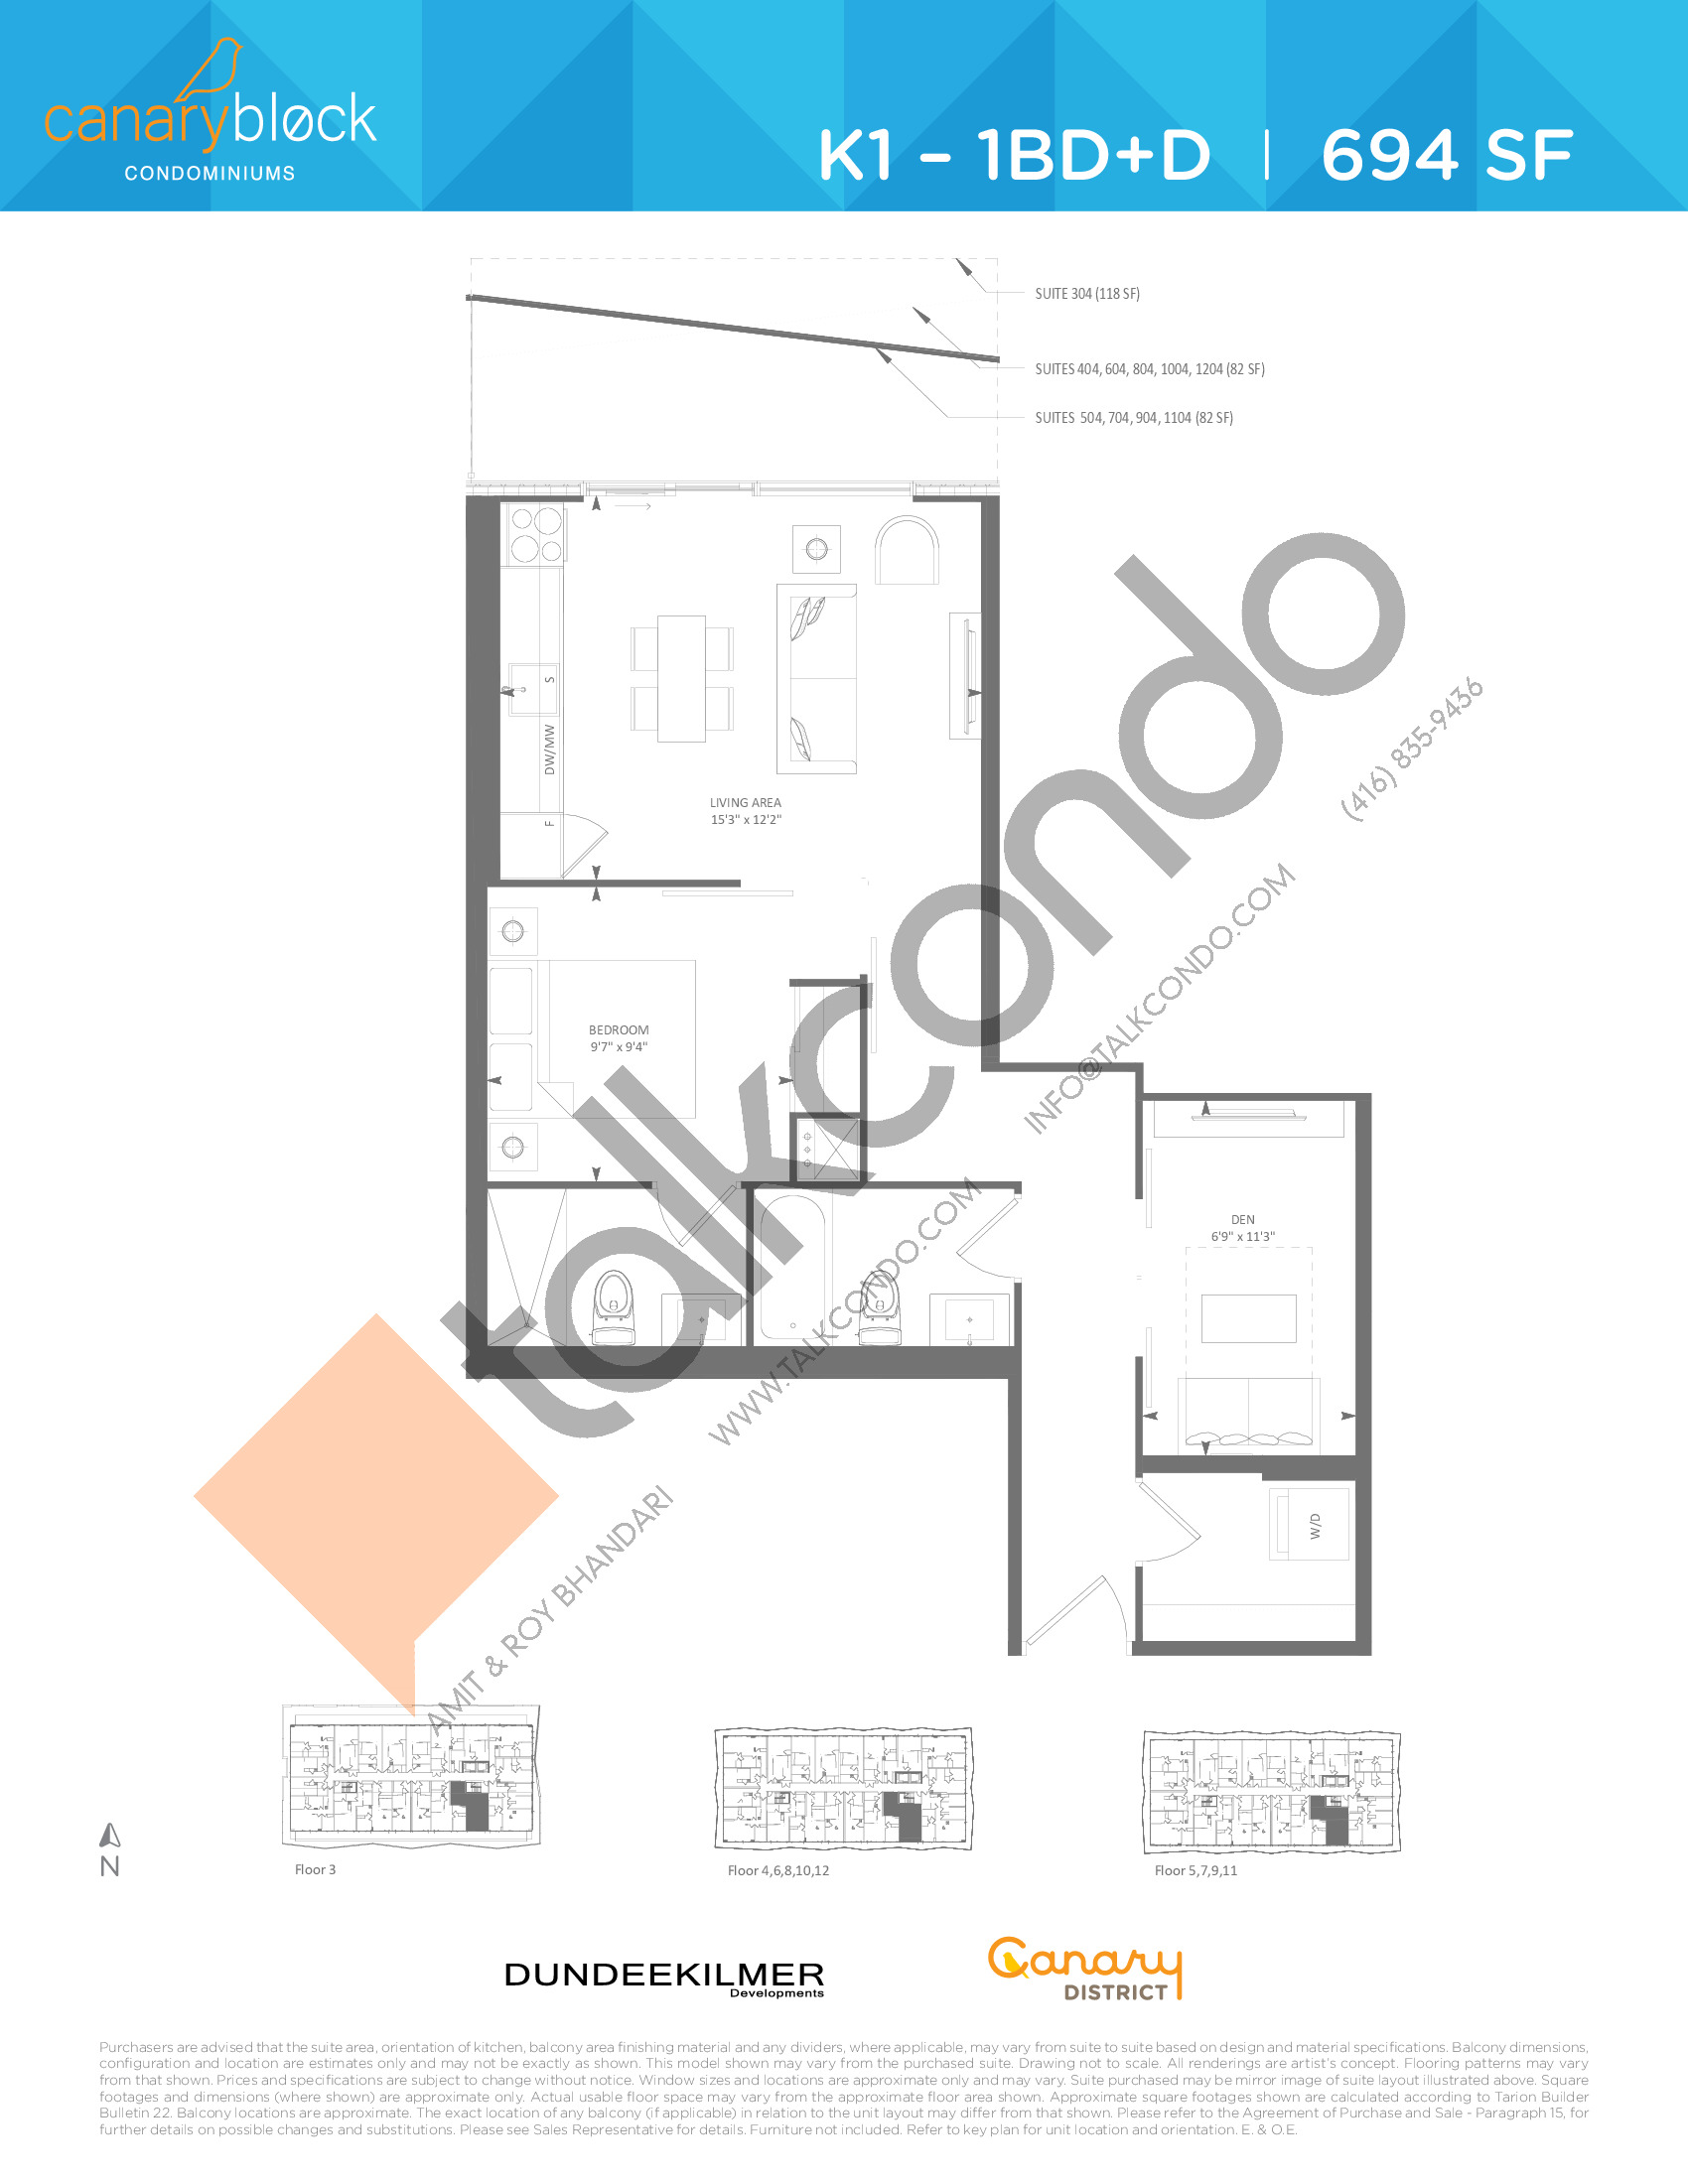 K1 - 1BD+D Floor Plan at Canary Block Condos - 694 sq.ft